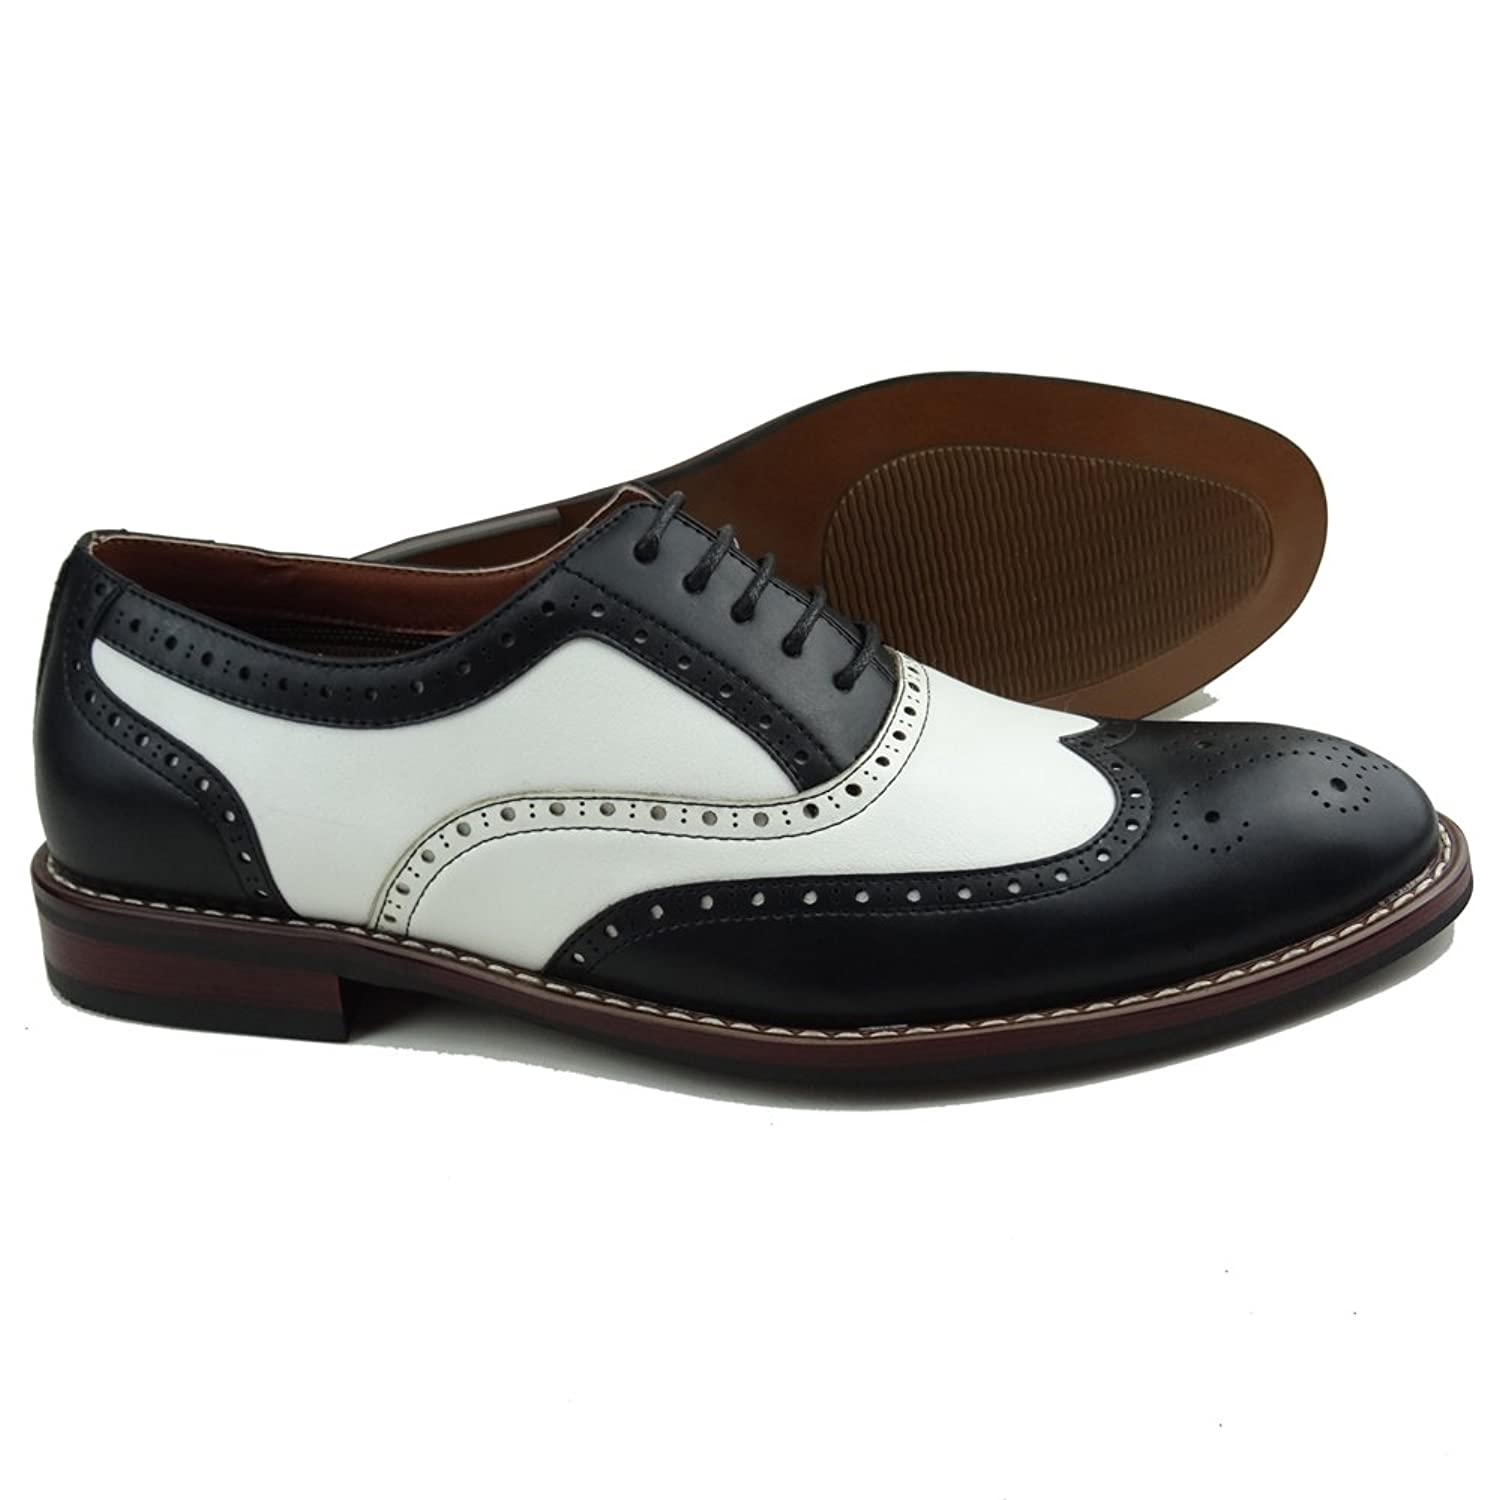 1940s Style Mens Shoes  Mens Black White Lace Up Wing Tip Perforated Oxford Dress Shoes $34.99 AT vintagedancer.com